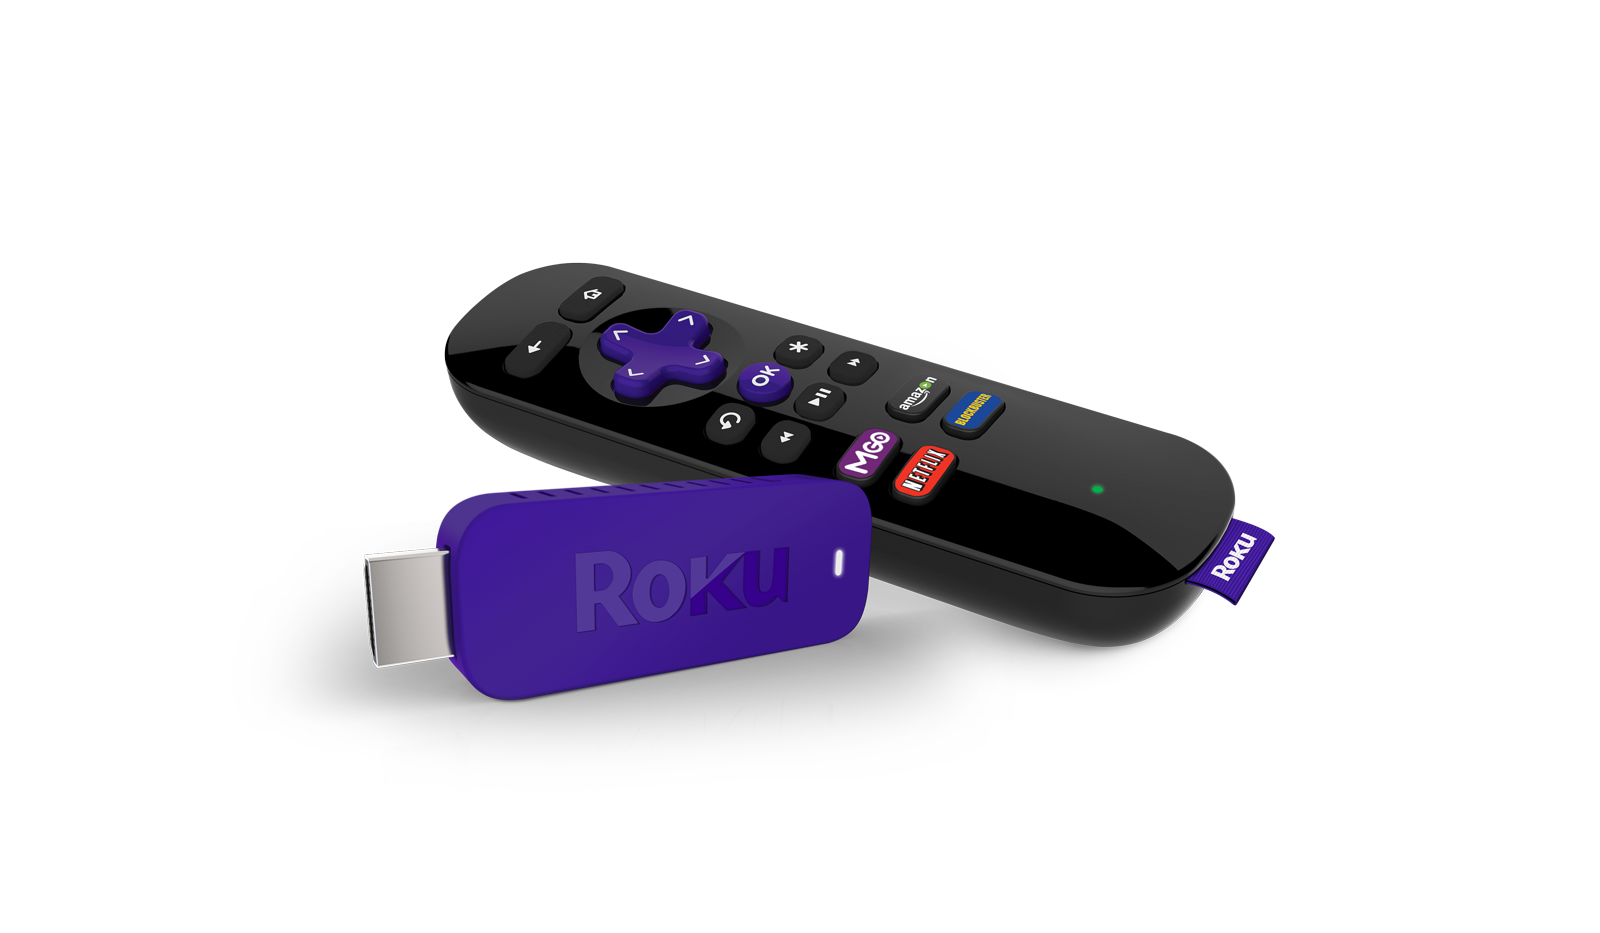 Cutting the cord: Roku sets terms for $204 million IPO